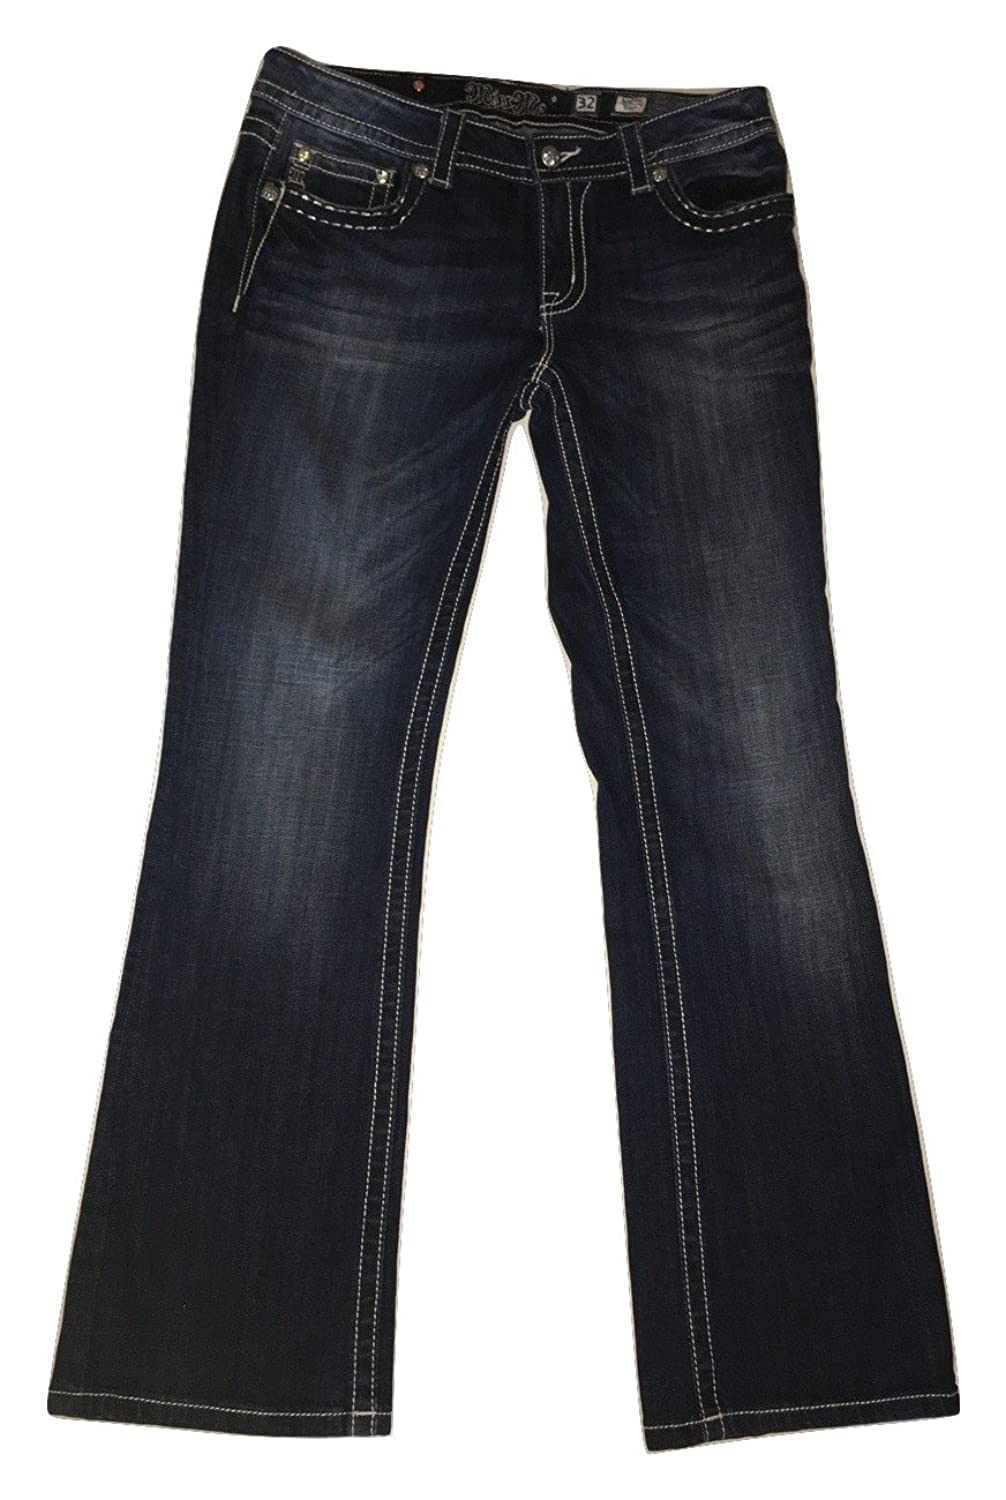 Miss Me Women's Distressed Lace-Inset Bootcut Jeans Dark Blue Wash Size 32